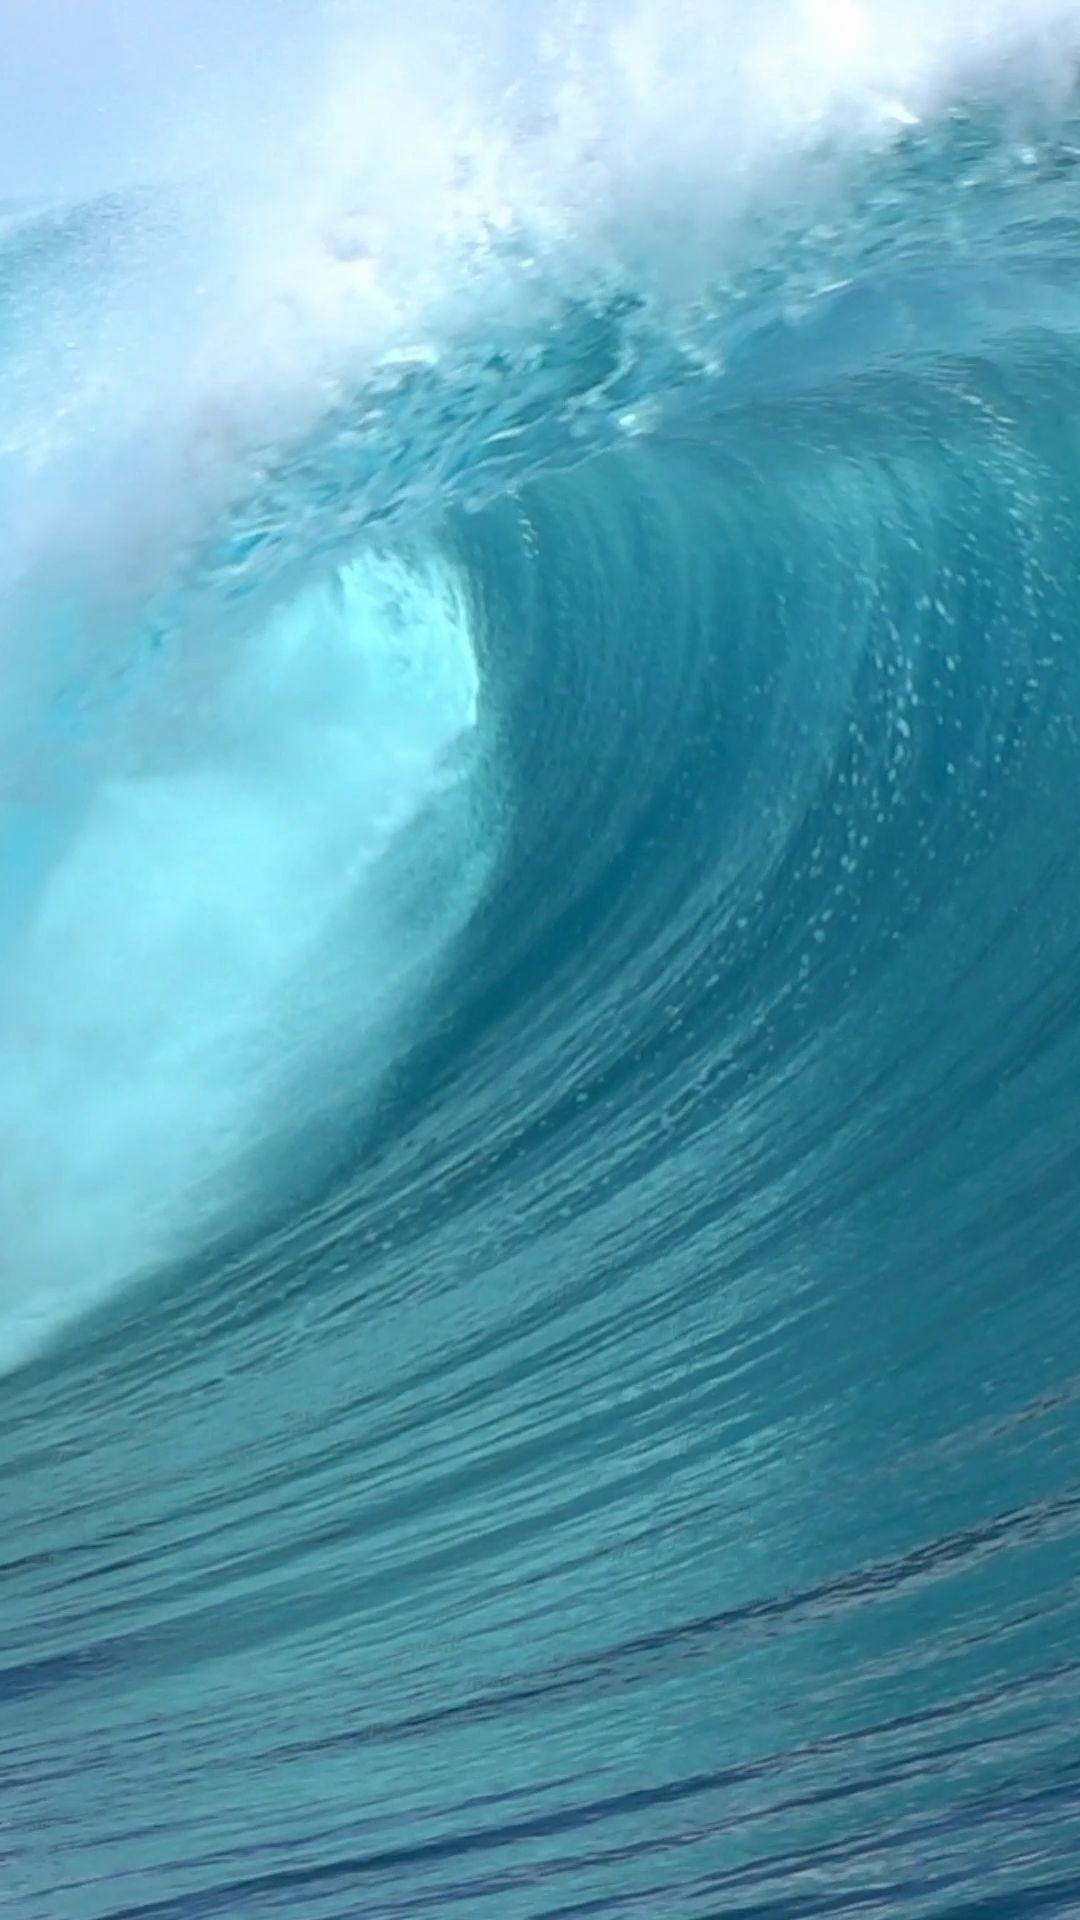 Amazing Live Wallpaper For Your Iphone From Everpix Live Wave